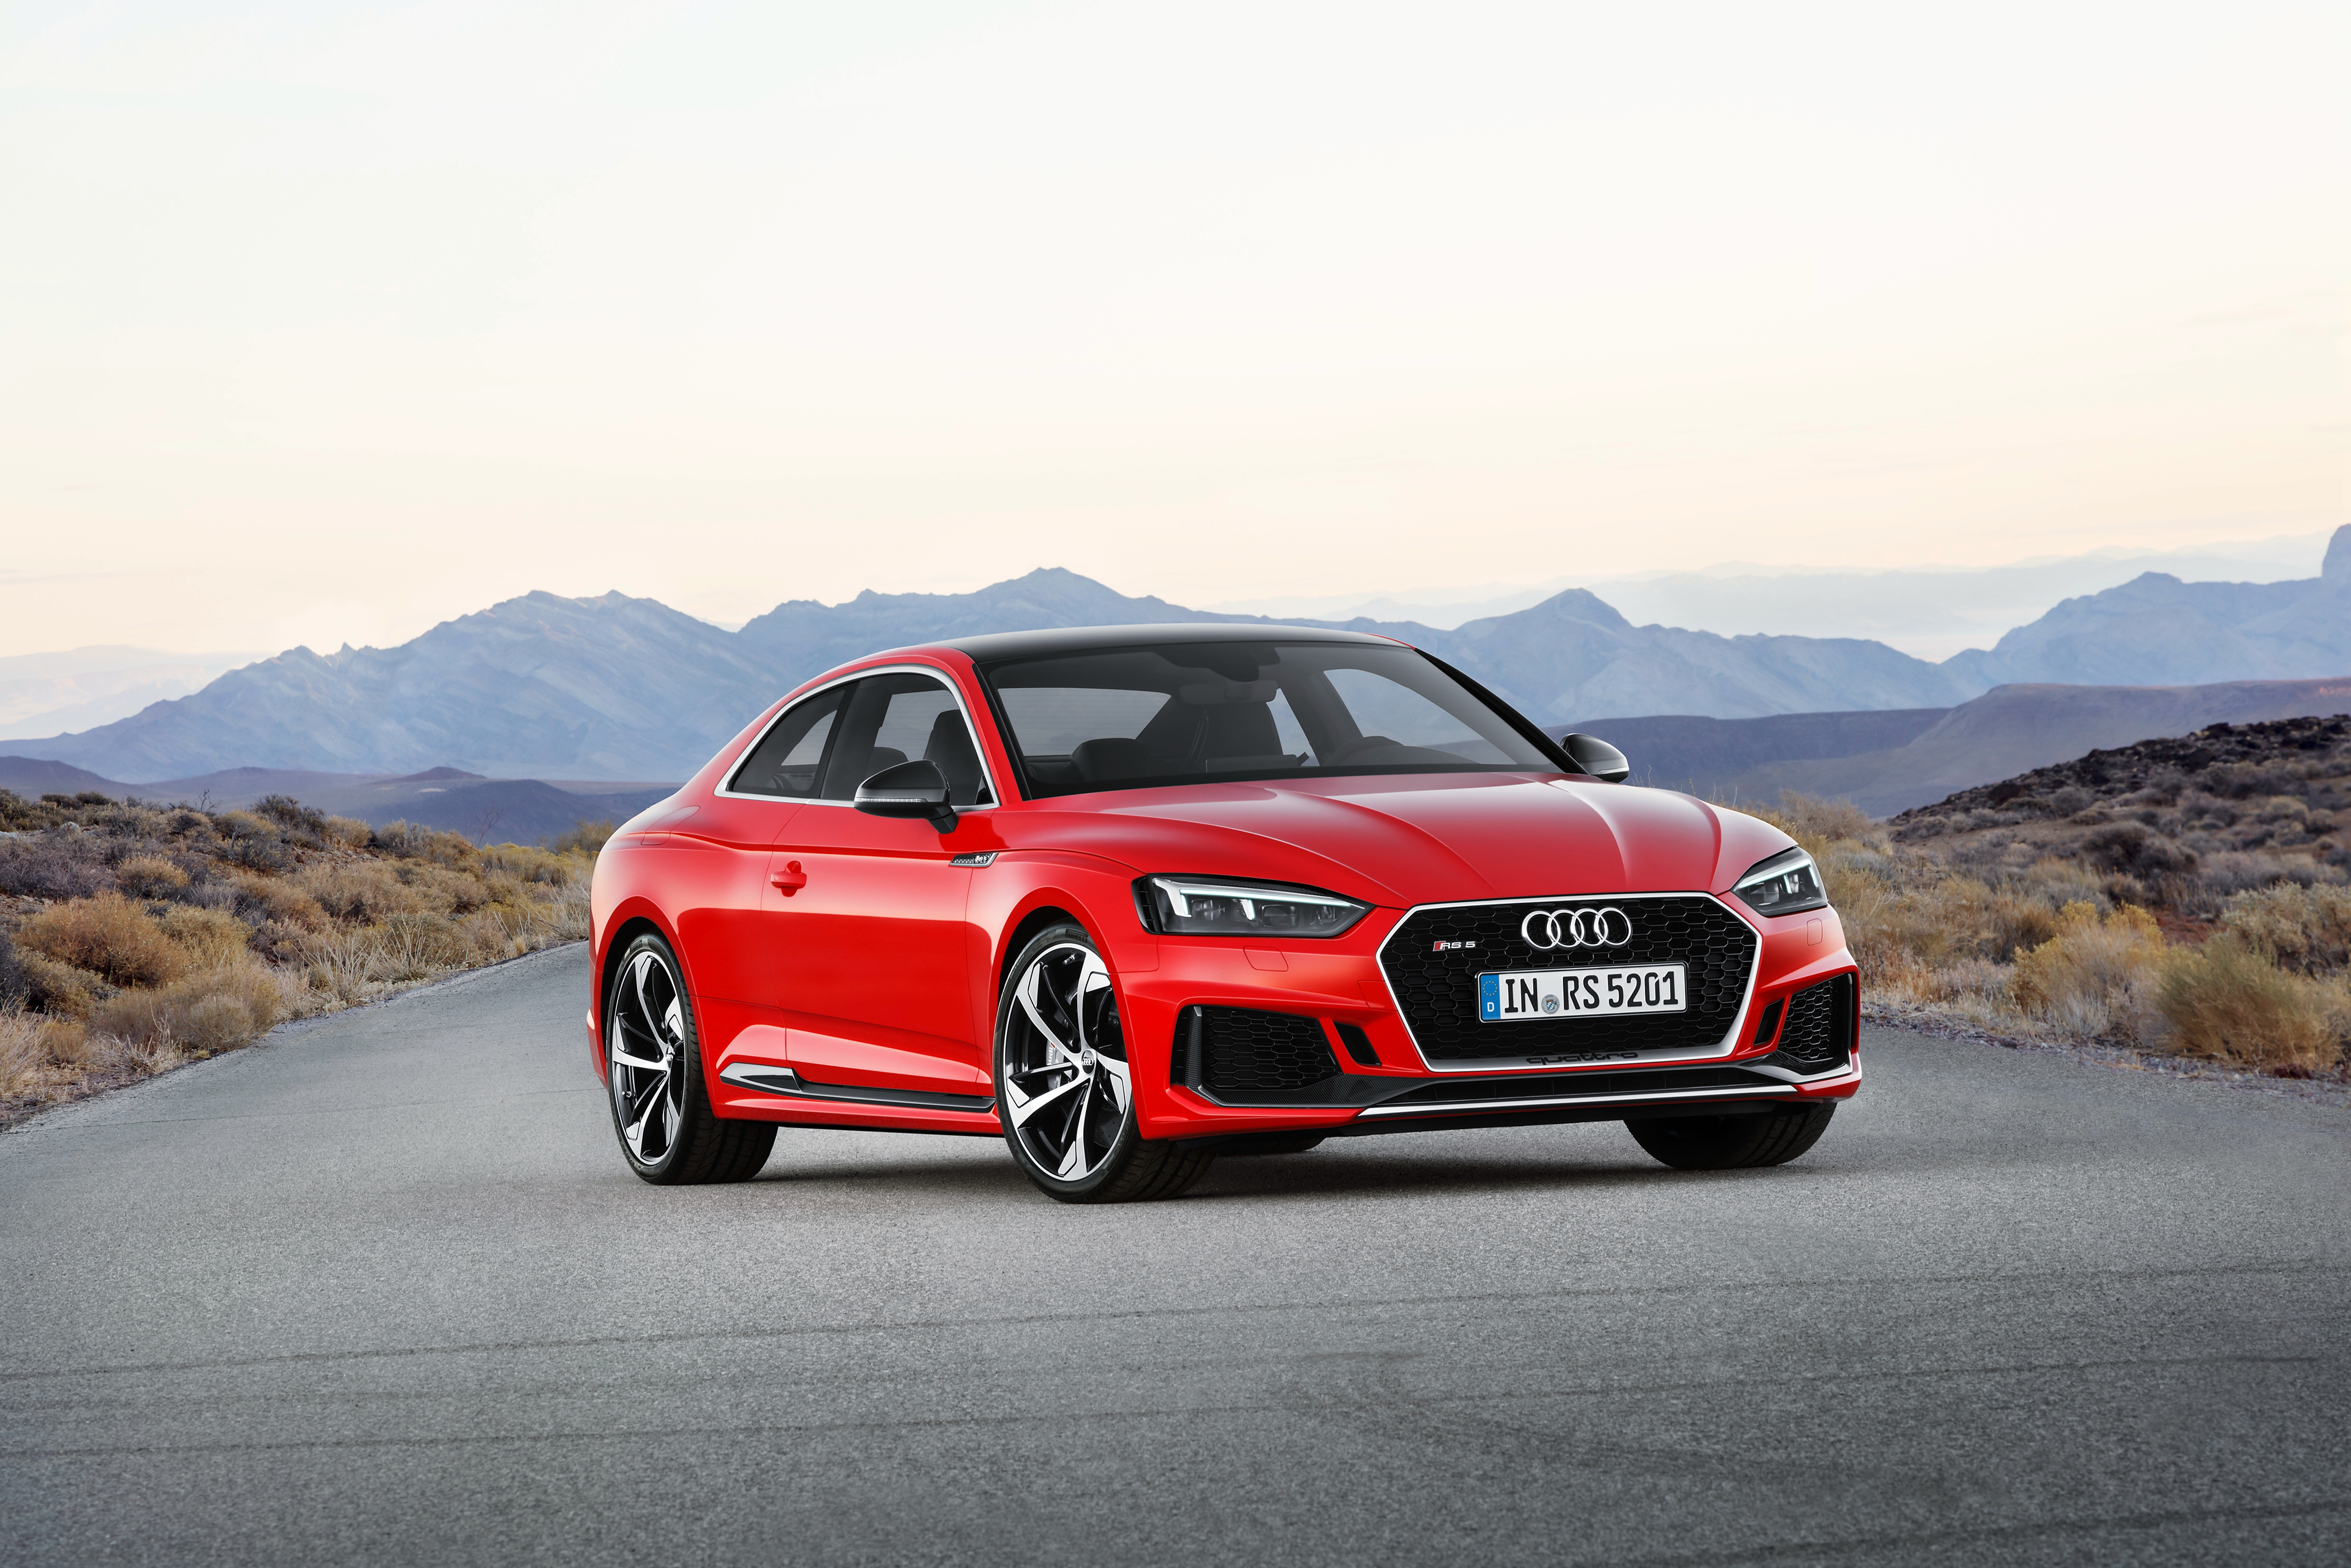 2018 Audi Rs5 Coupe, HD Girls, 4k Wallpapers, Images ...